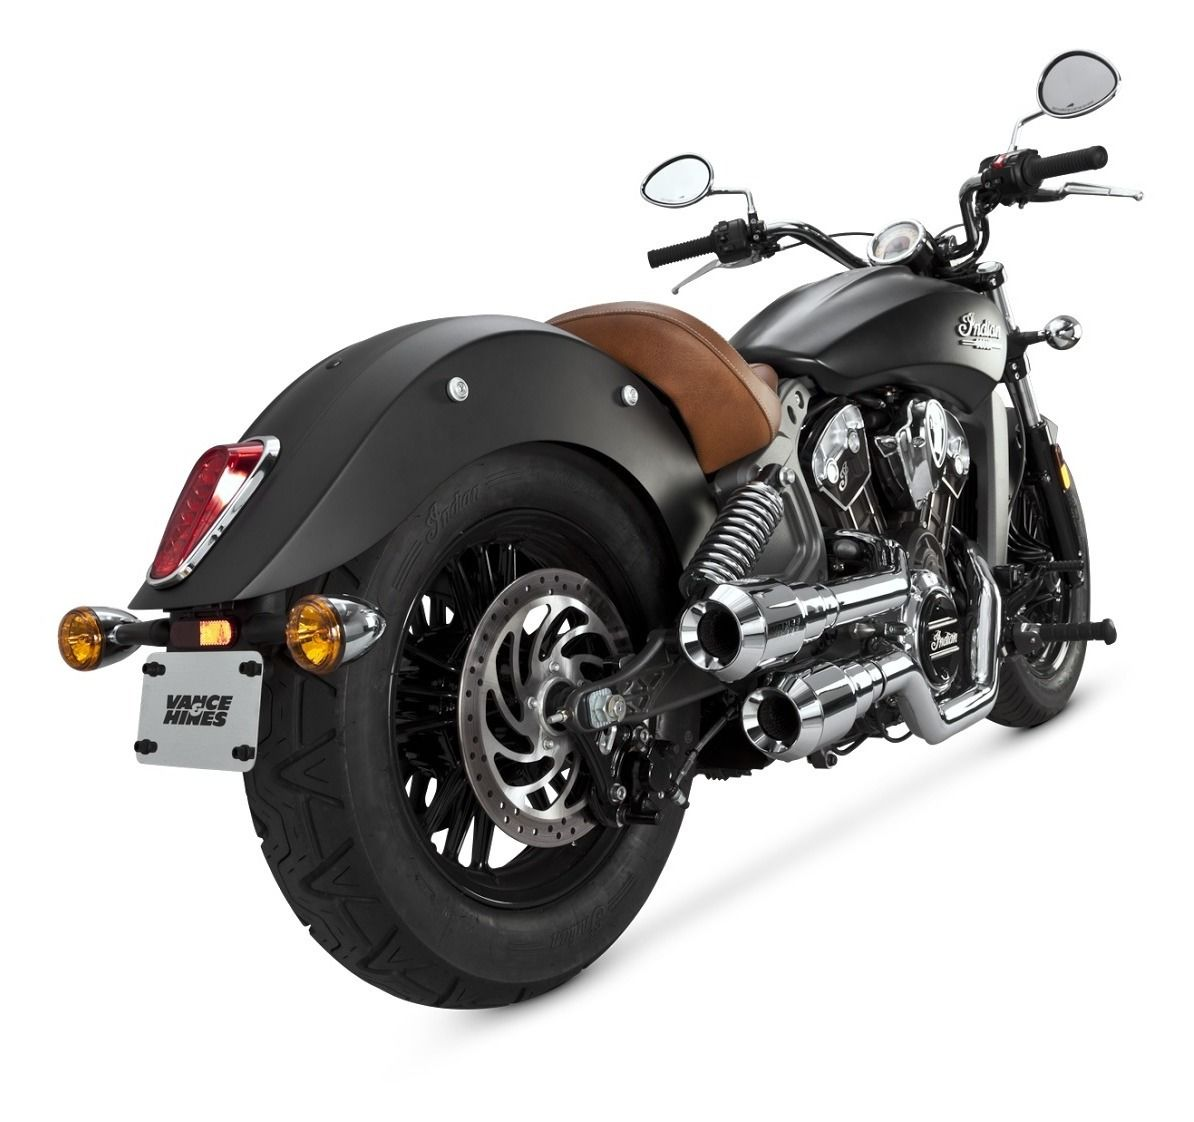 Closeout Vance Hines Grenades Hi Output Exhaust For Indian Scout 2015 2018